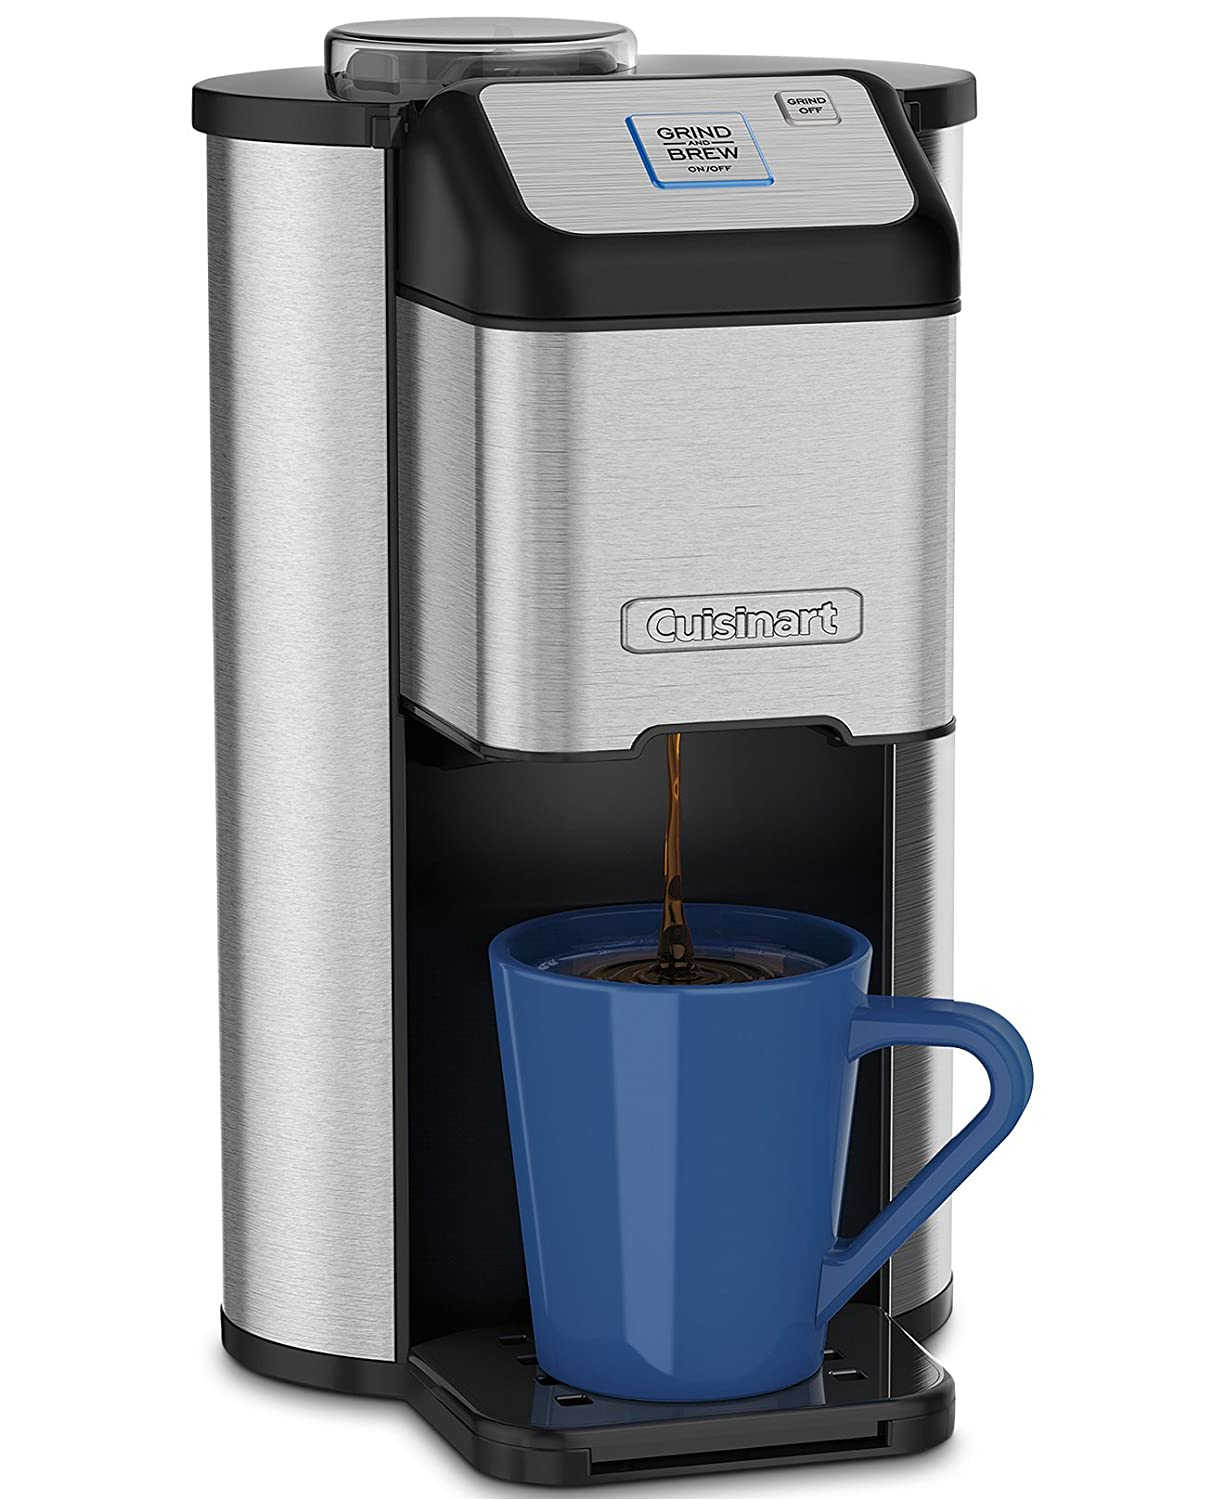 Amazon.com: Cuisinart Single Cup Grind & Brew Coffeemaker with Automatic  Blade Grinder and Removable Parts & Removable Parts & BONUS FREE Gold Tone  Filter ...